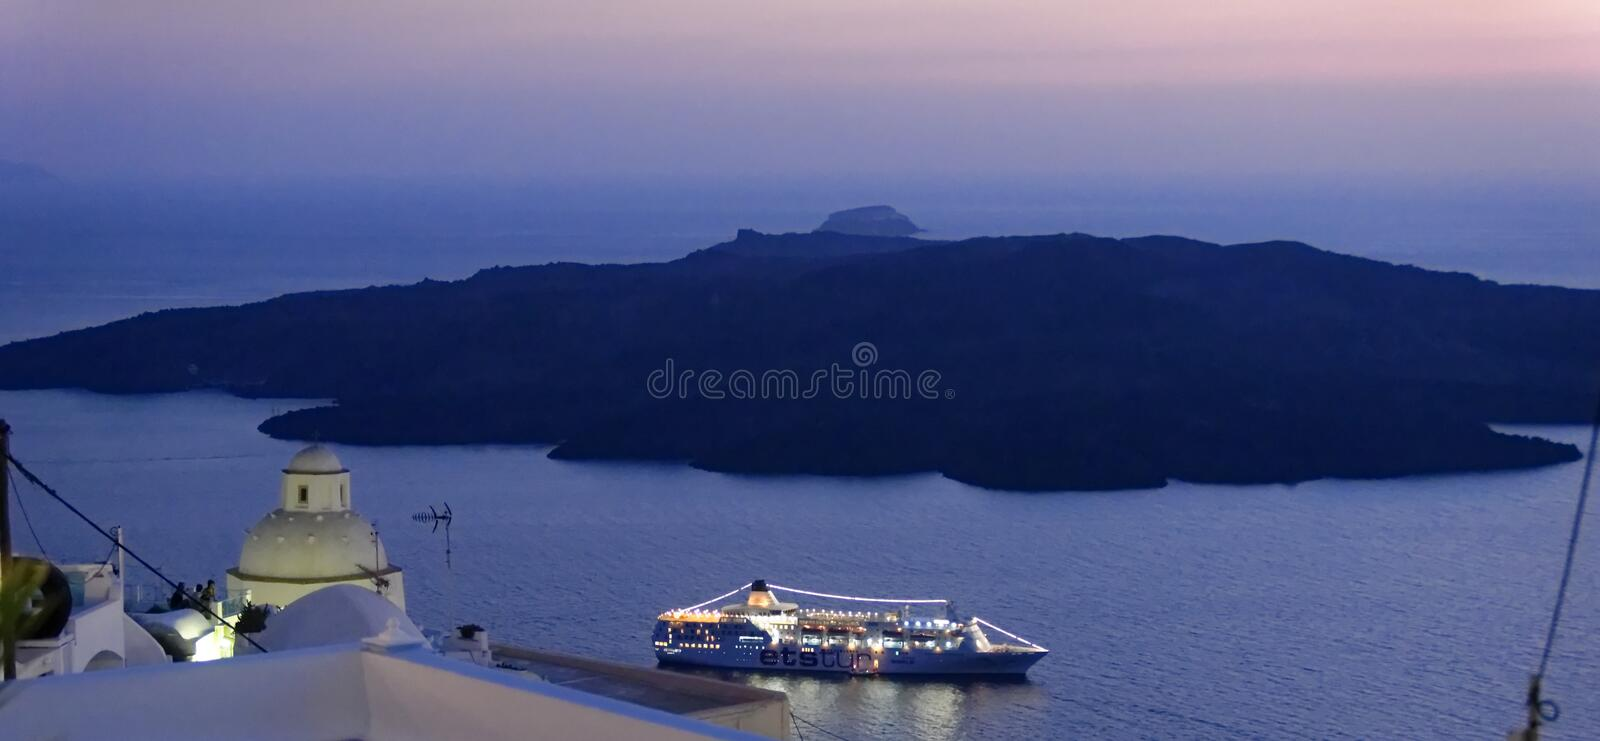 Download Santorini at night stock photo. Image of color, night - 34483184